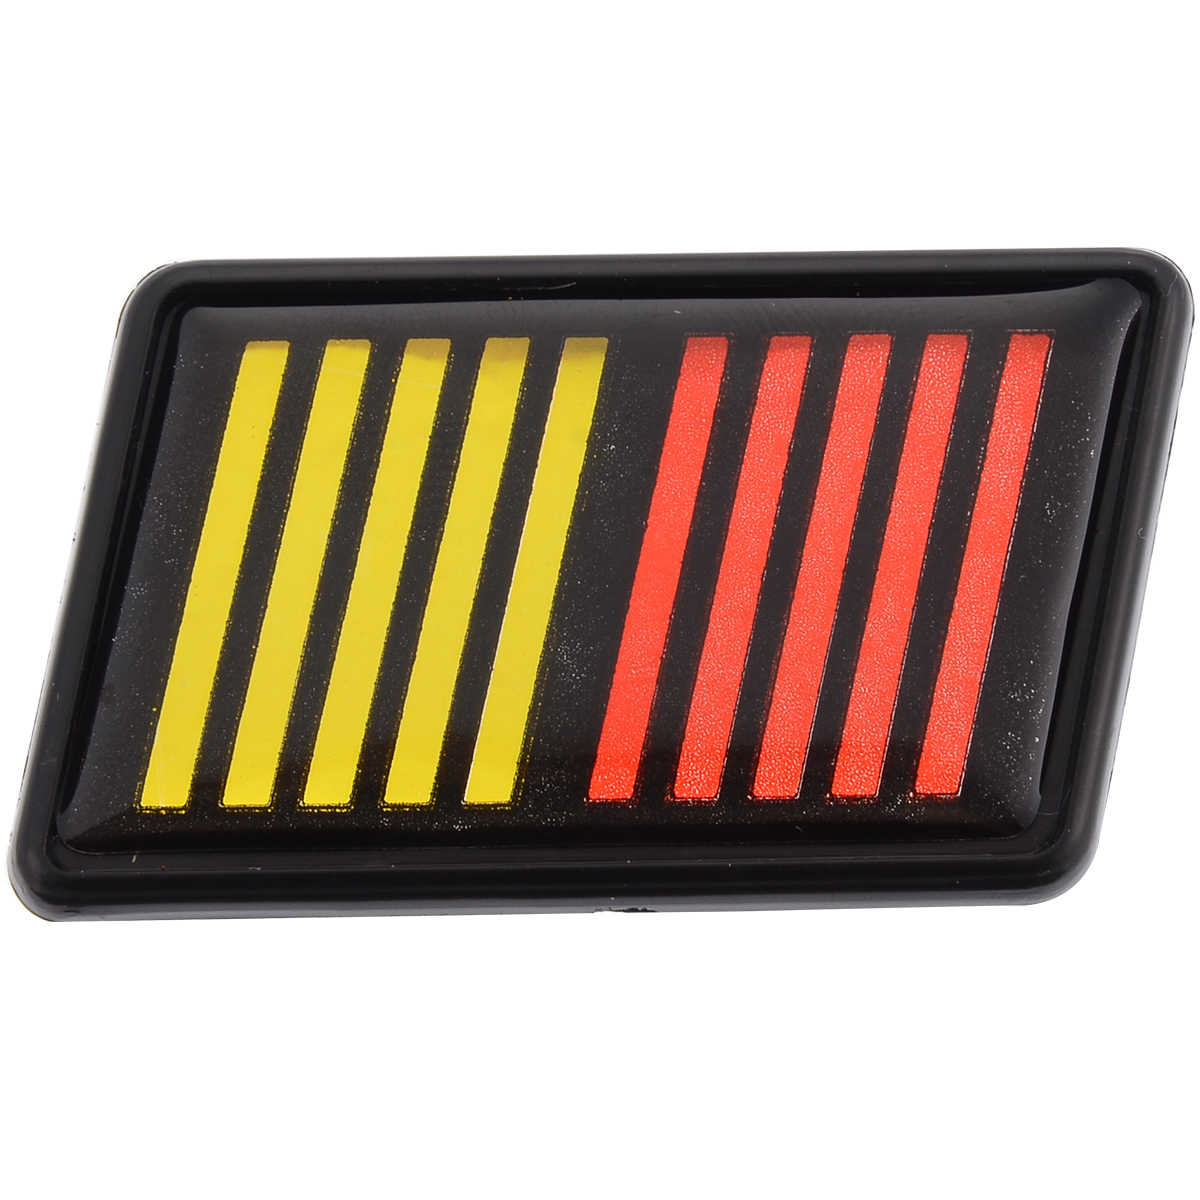 New Arrival 55 x 35mm Red Yellow Black Ralliart Stripe Grille Emblem Badge Car Styling Emblem For Mitsubishi